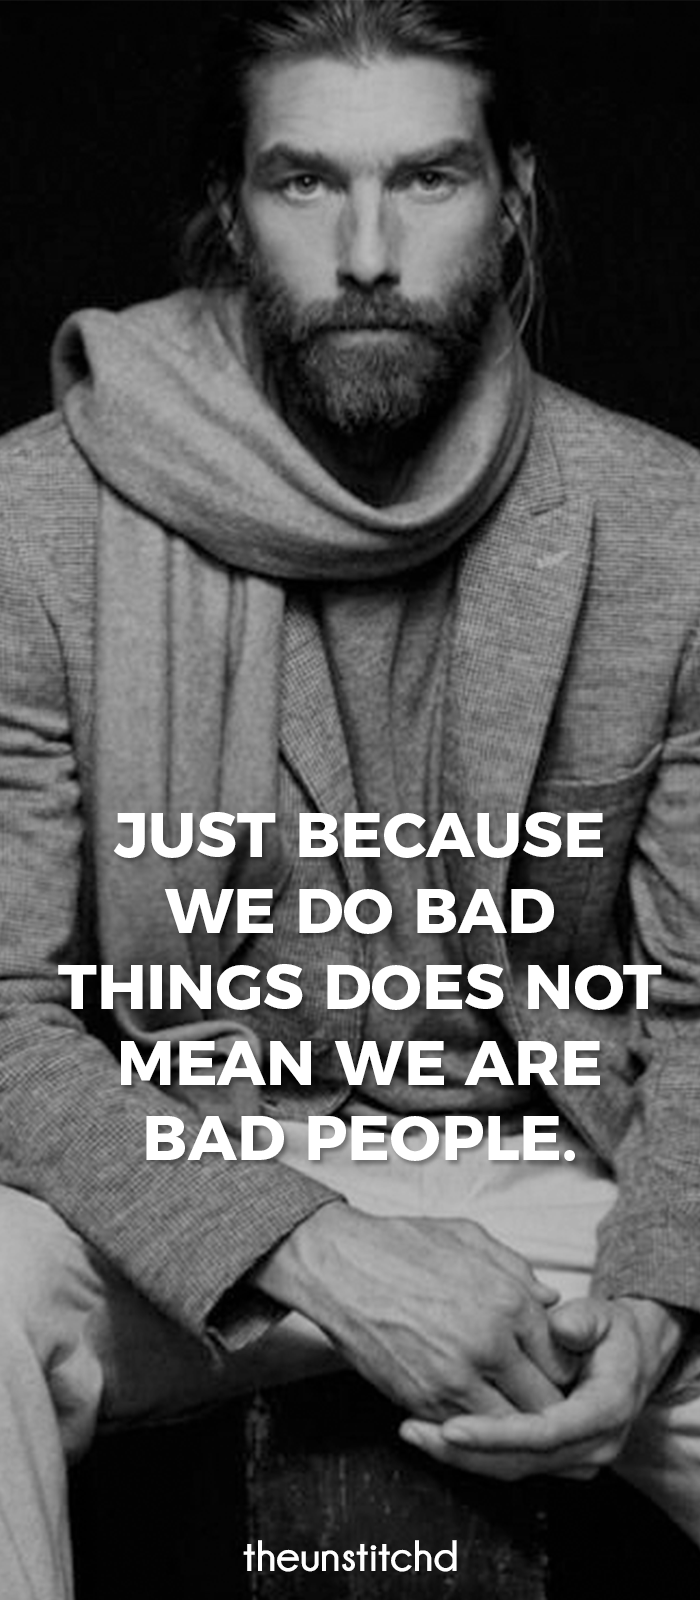 45 Powerful Quotes Sayings For Men To Live By Powerful Quotes Interesting Quotes Sayings